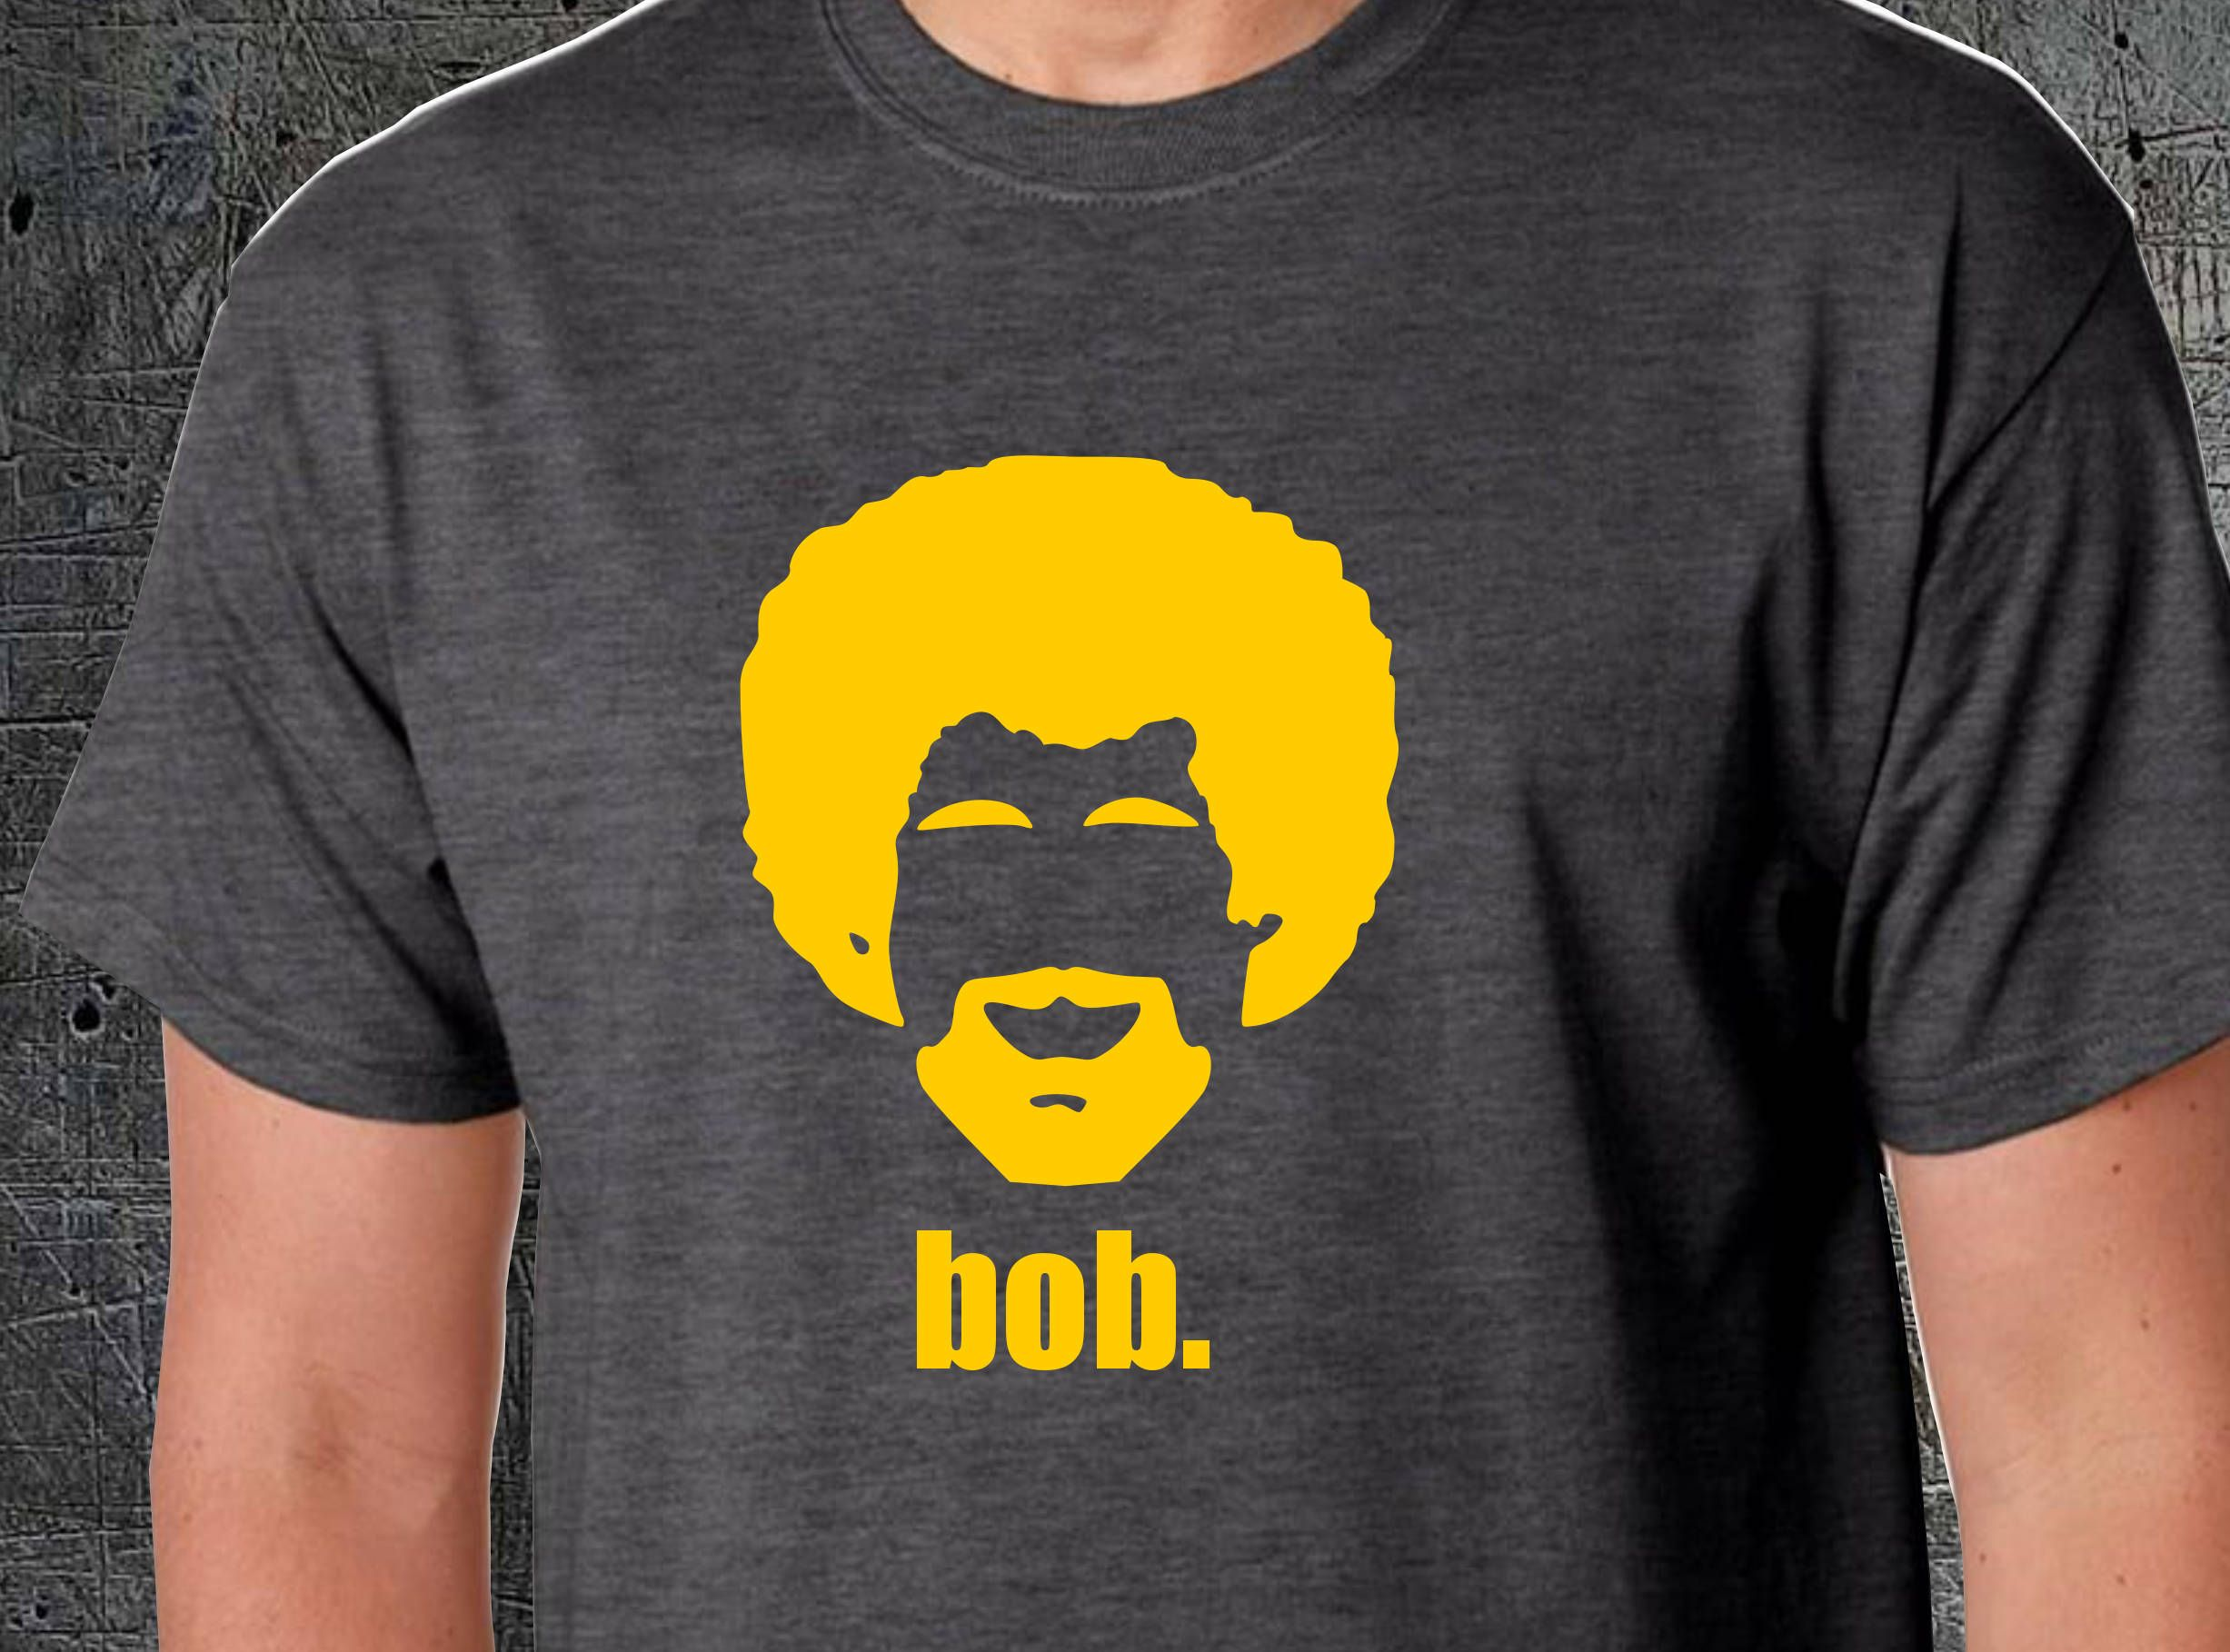 8ad44d47b Bob Ross Shirt-- Artist Shirt- Painting Shirt-- Happy Little Accidents- Happy  Trees- Gift by FireAntTees on Etsy